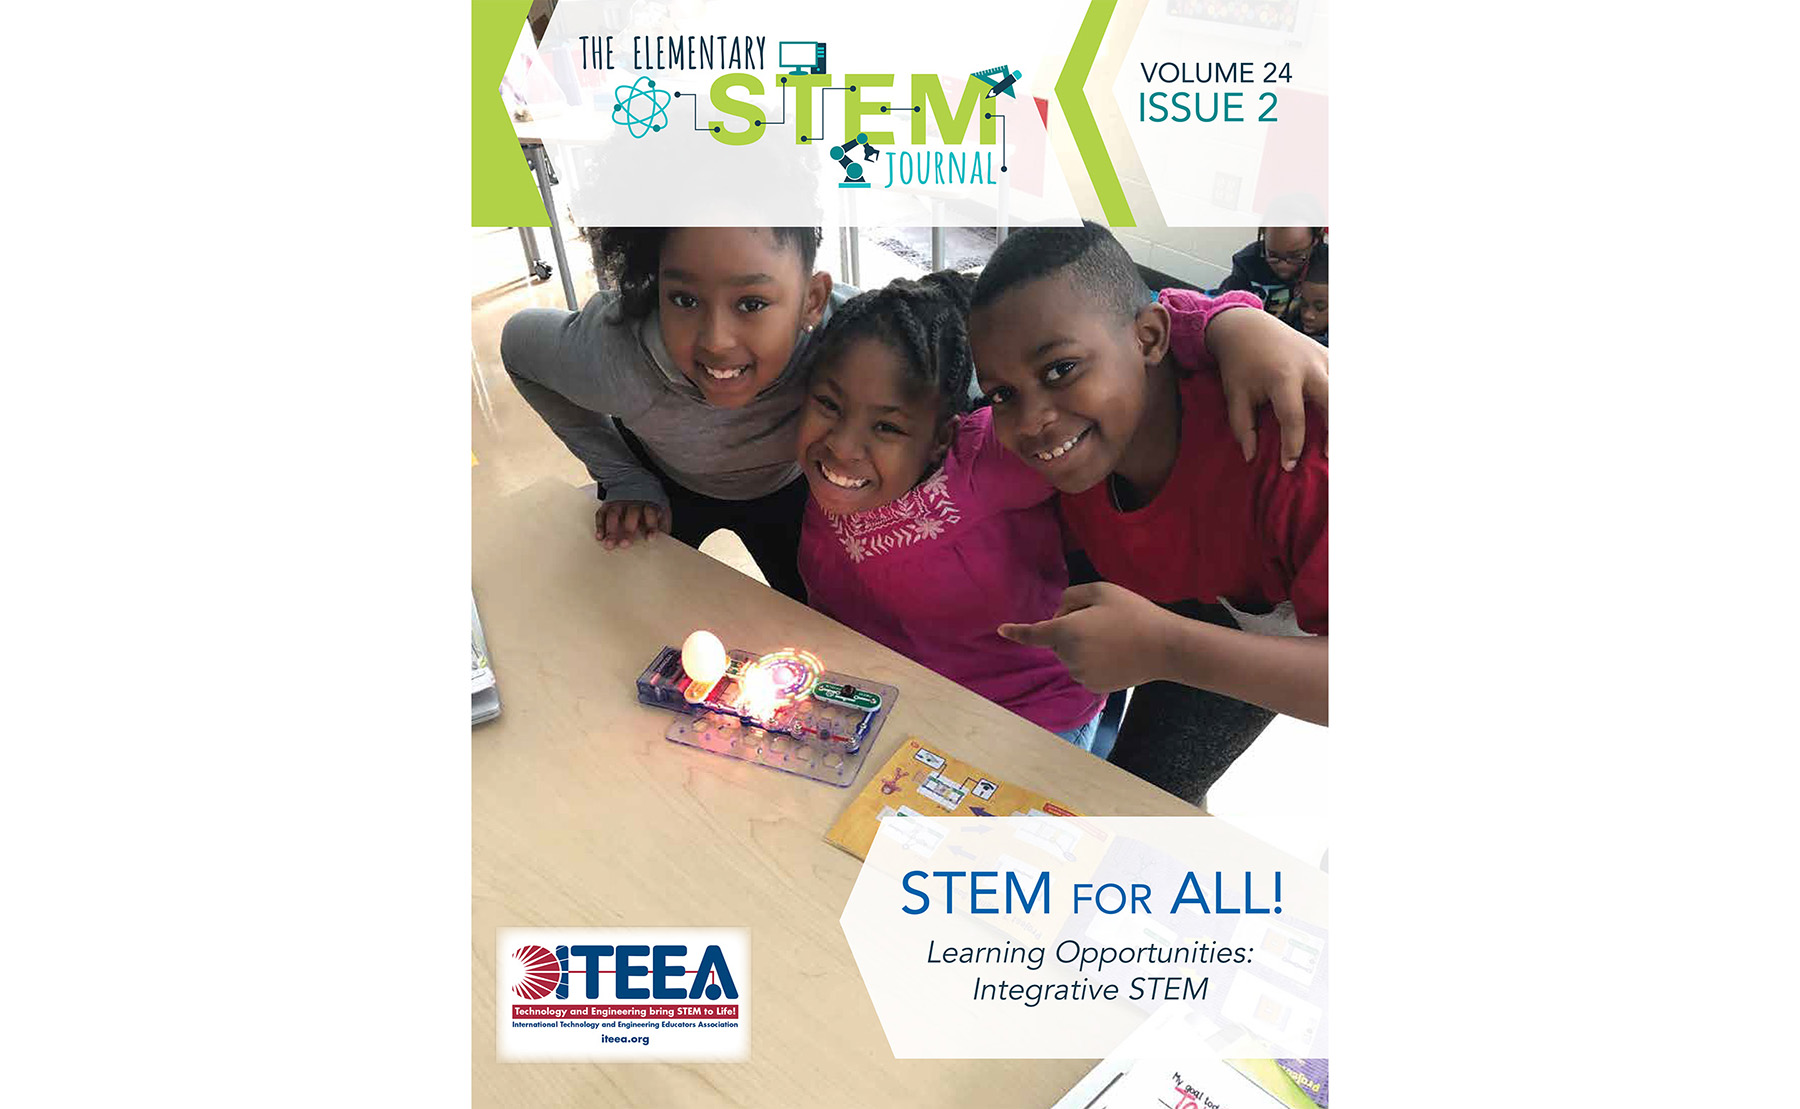 Here's a Sampling of What's Available in the December 2019 Issue of ITEEA's Elementary STEM Journal